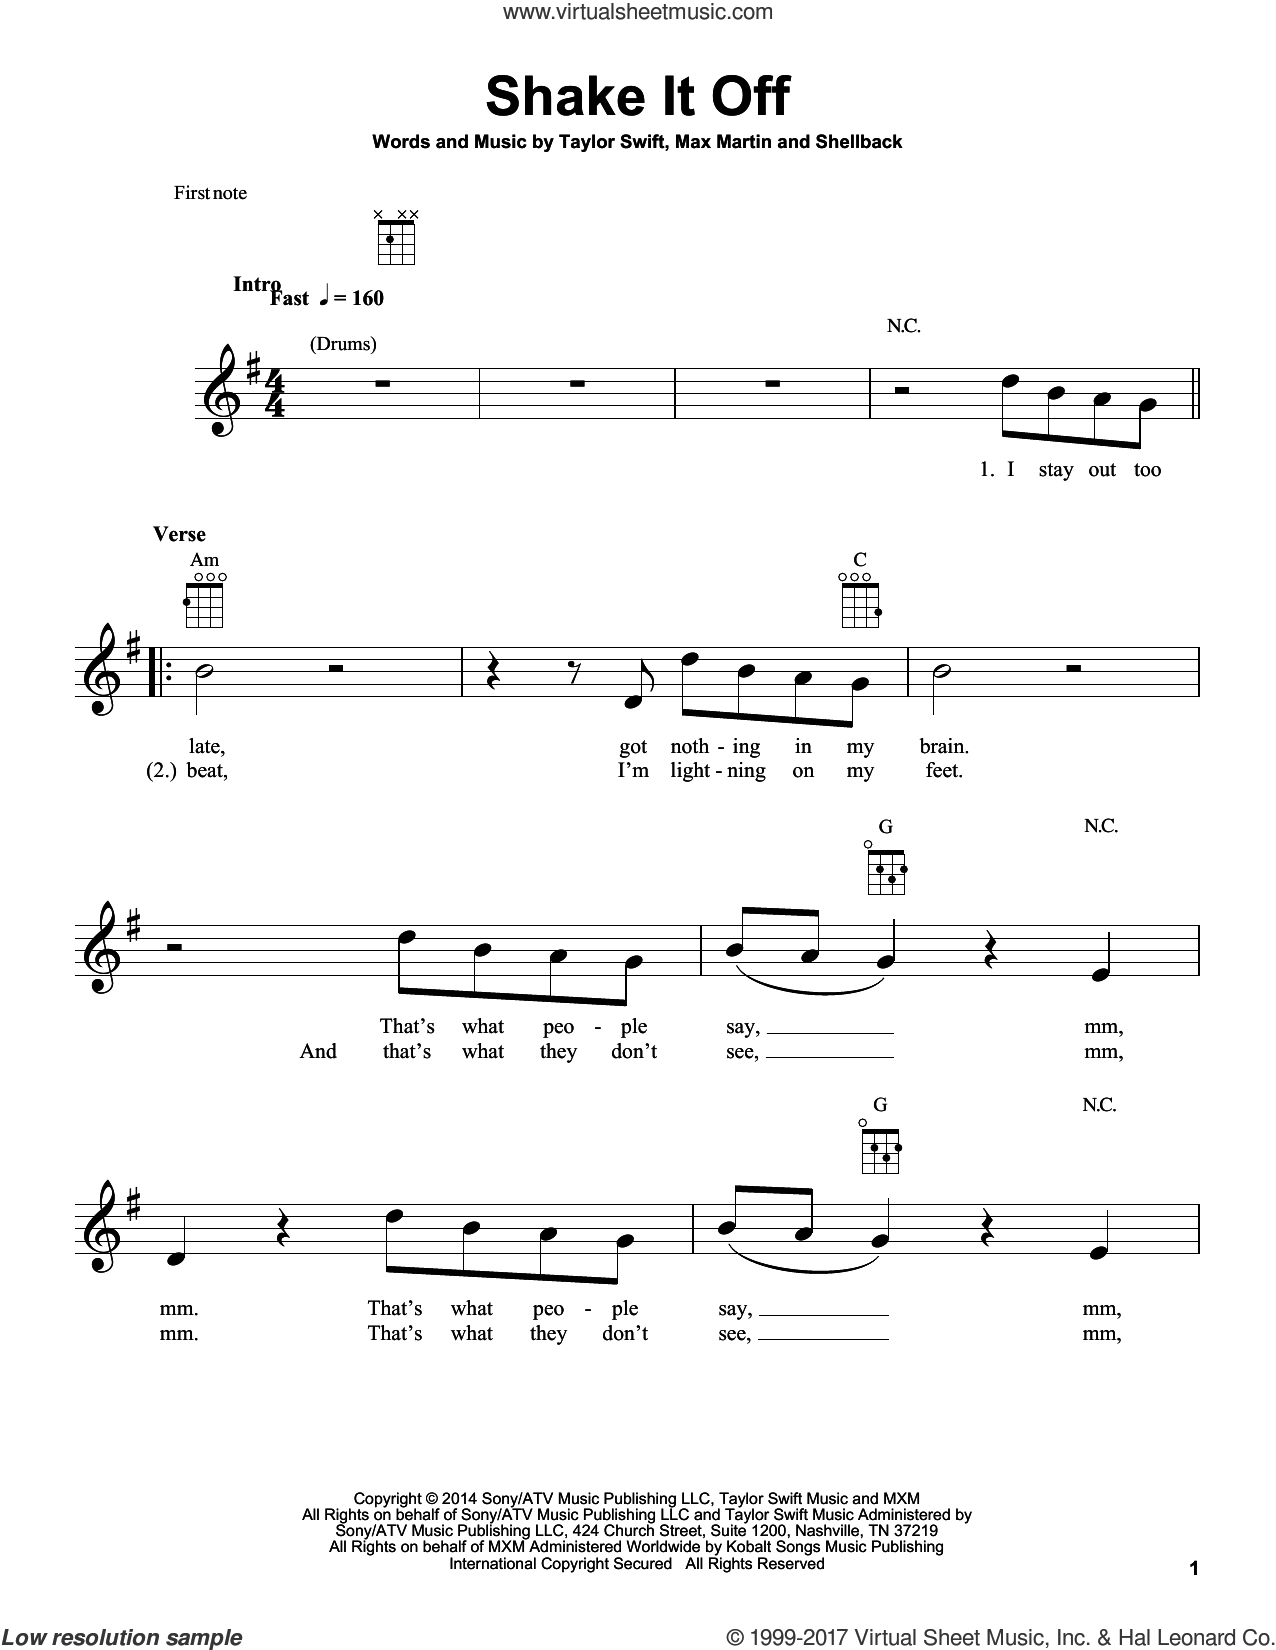 Shake It Off sheet music for ukulele by Taylor Swift, Johan Schuster, Max Martin and Shellback, intermediate. Score Image Preview.